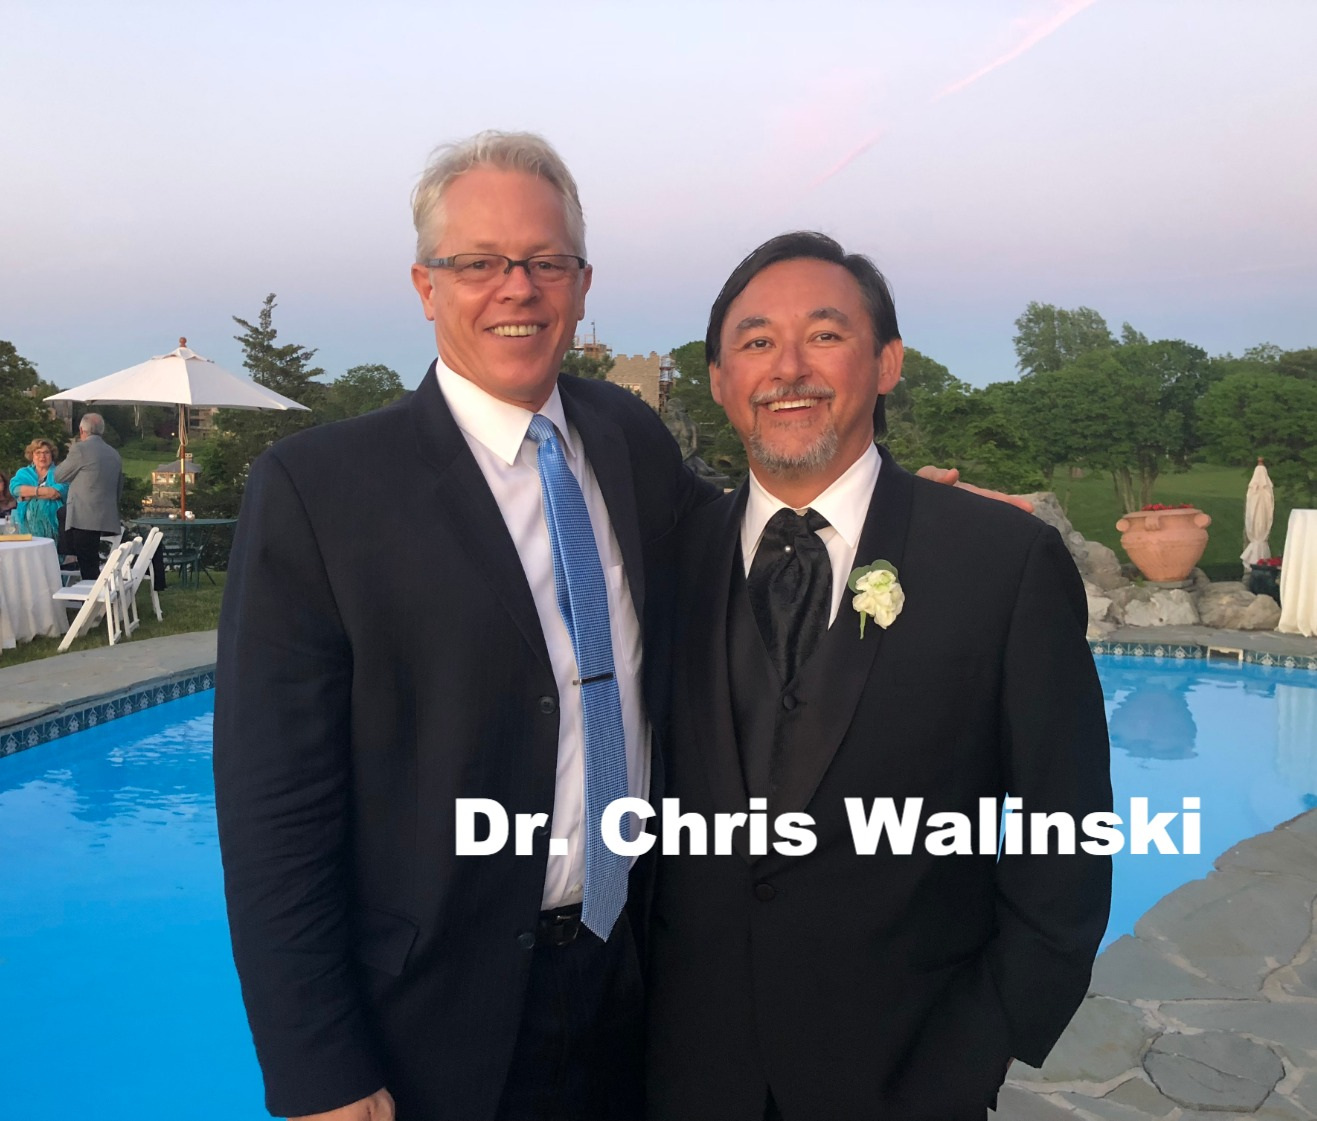 Dr Chris Walinski 2018_edited